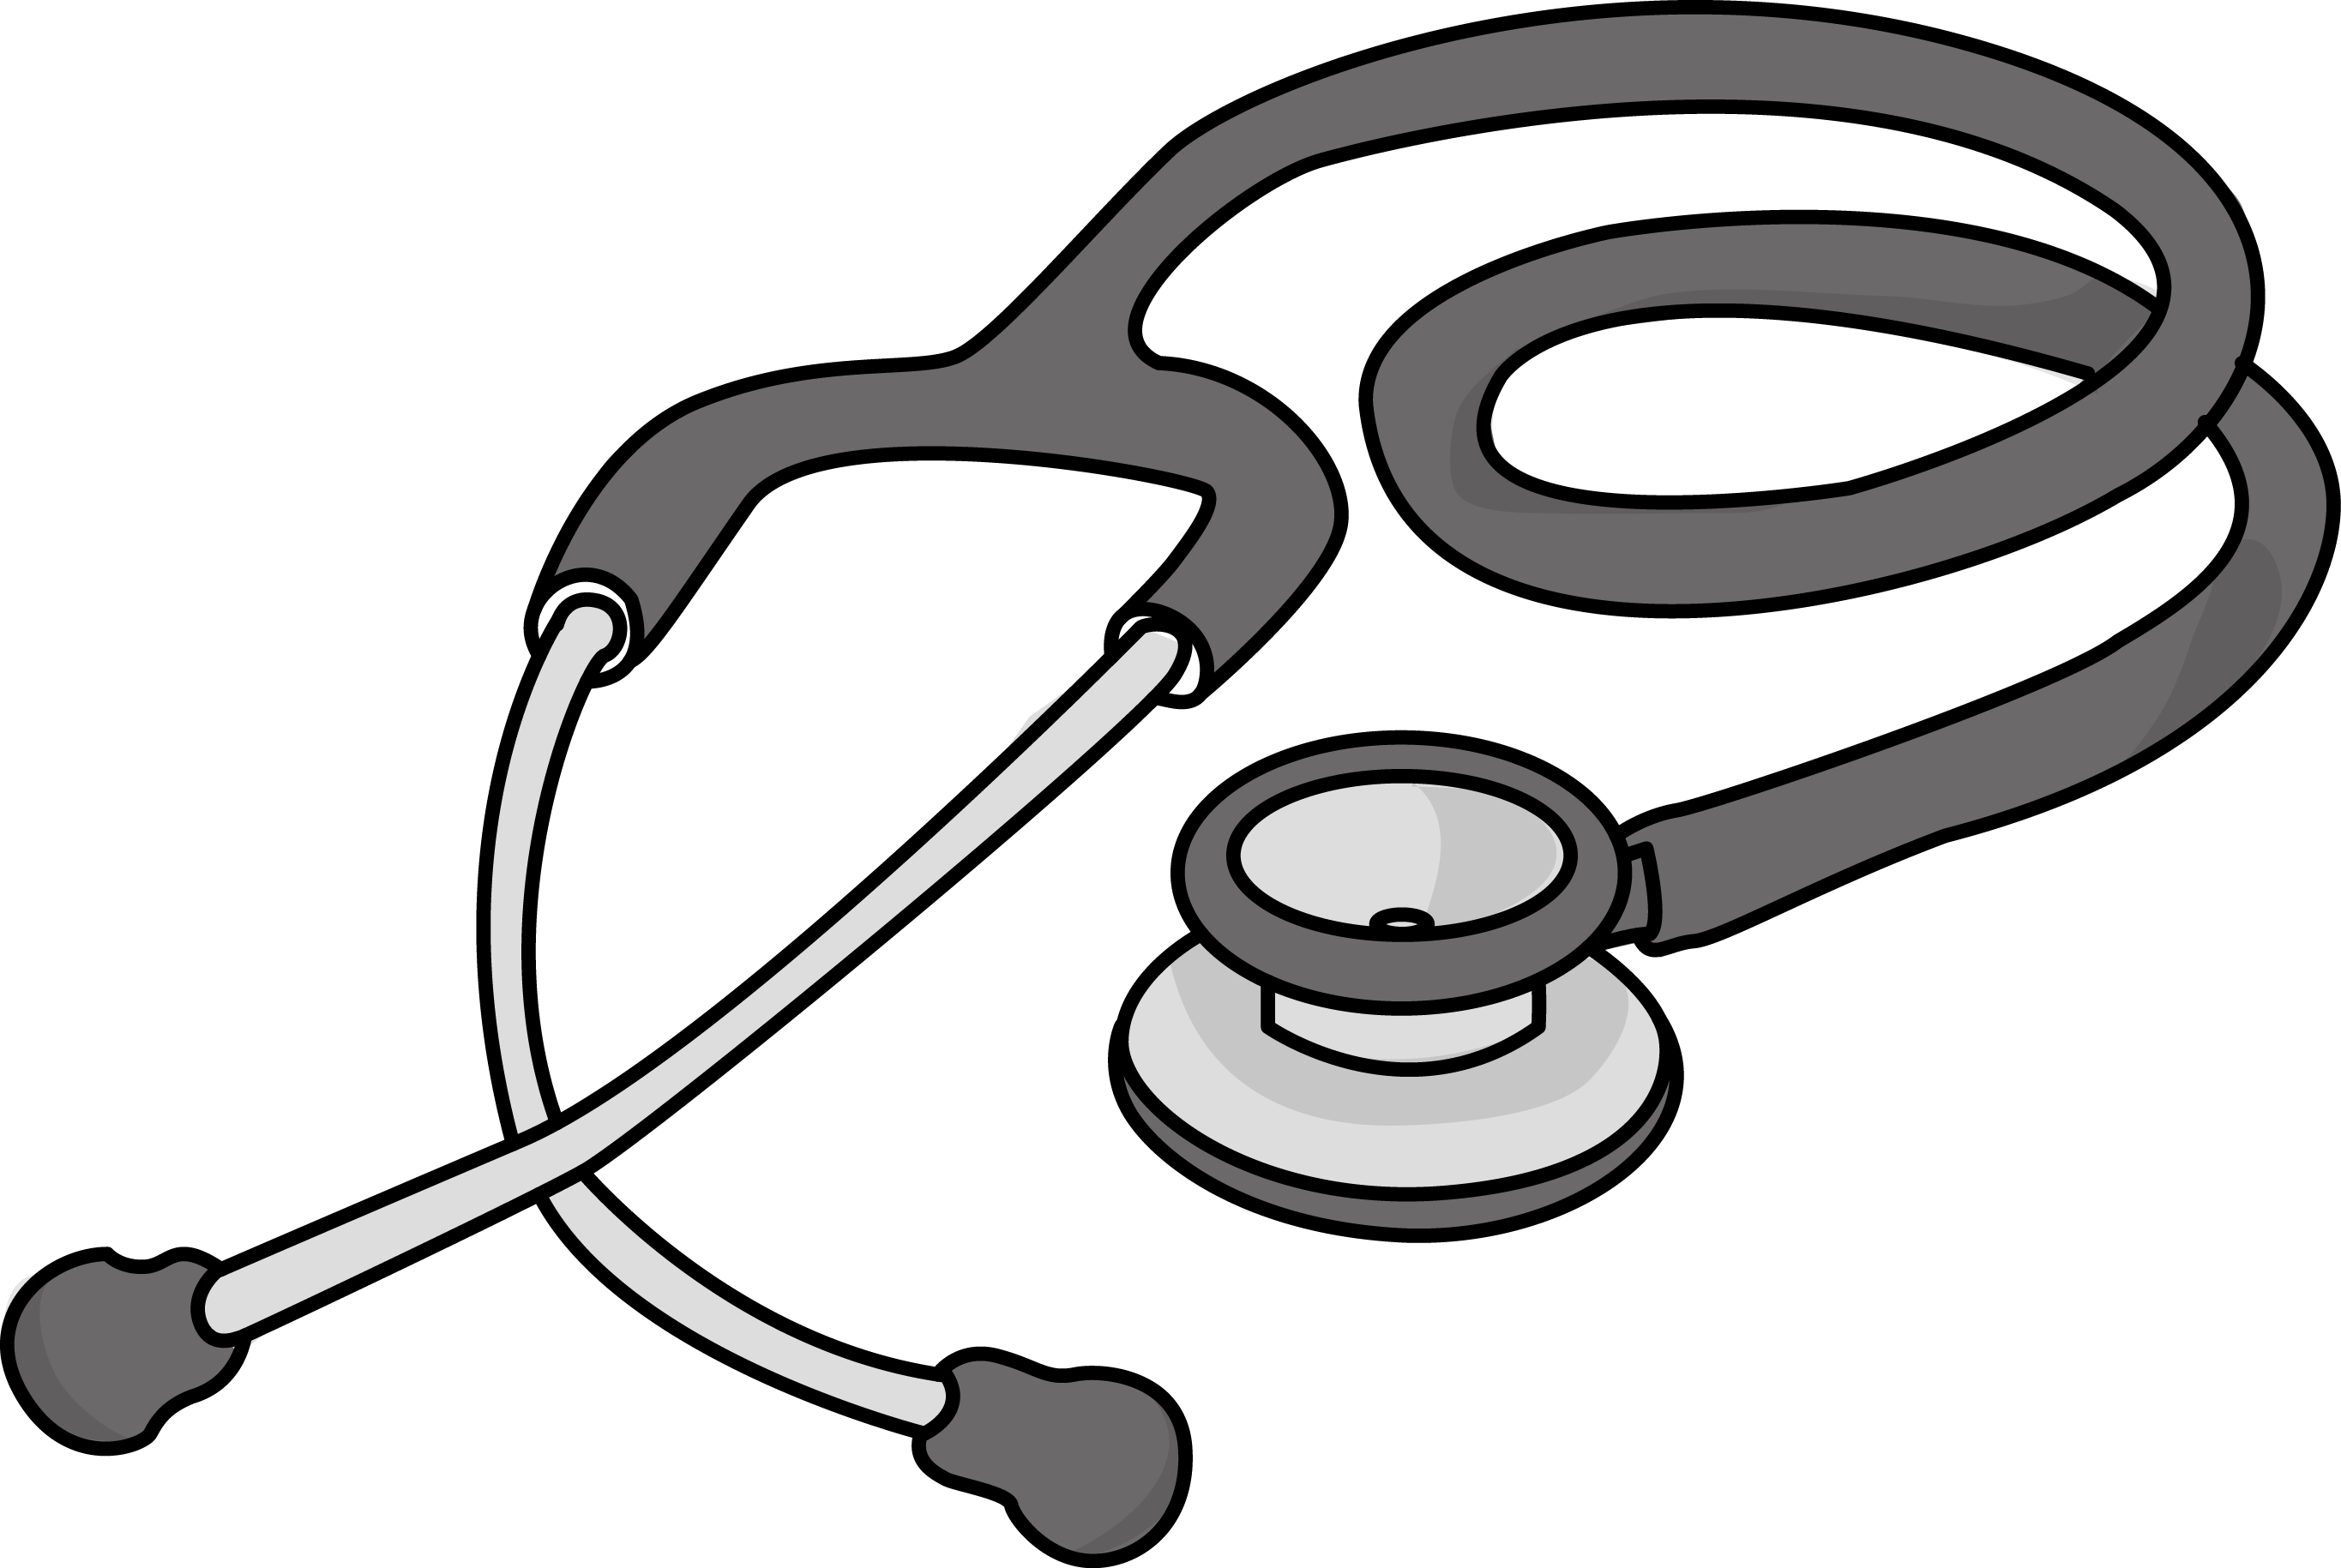 2730x1829 Stethoscope Clipart